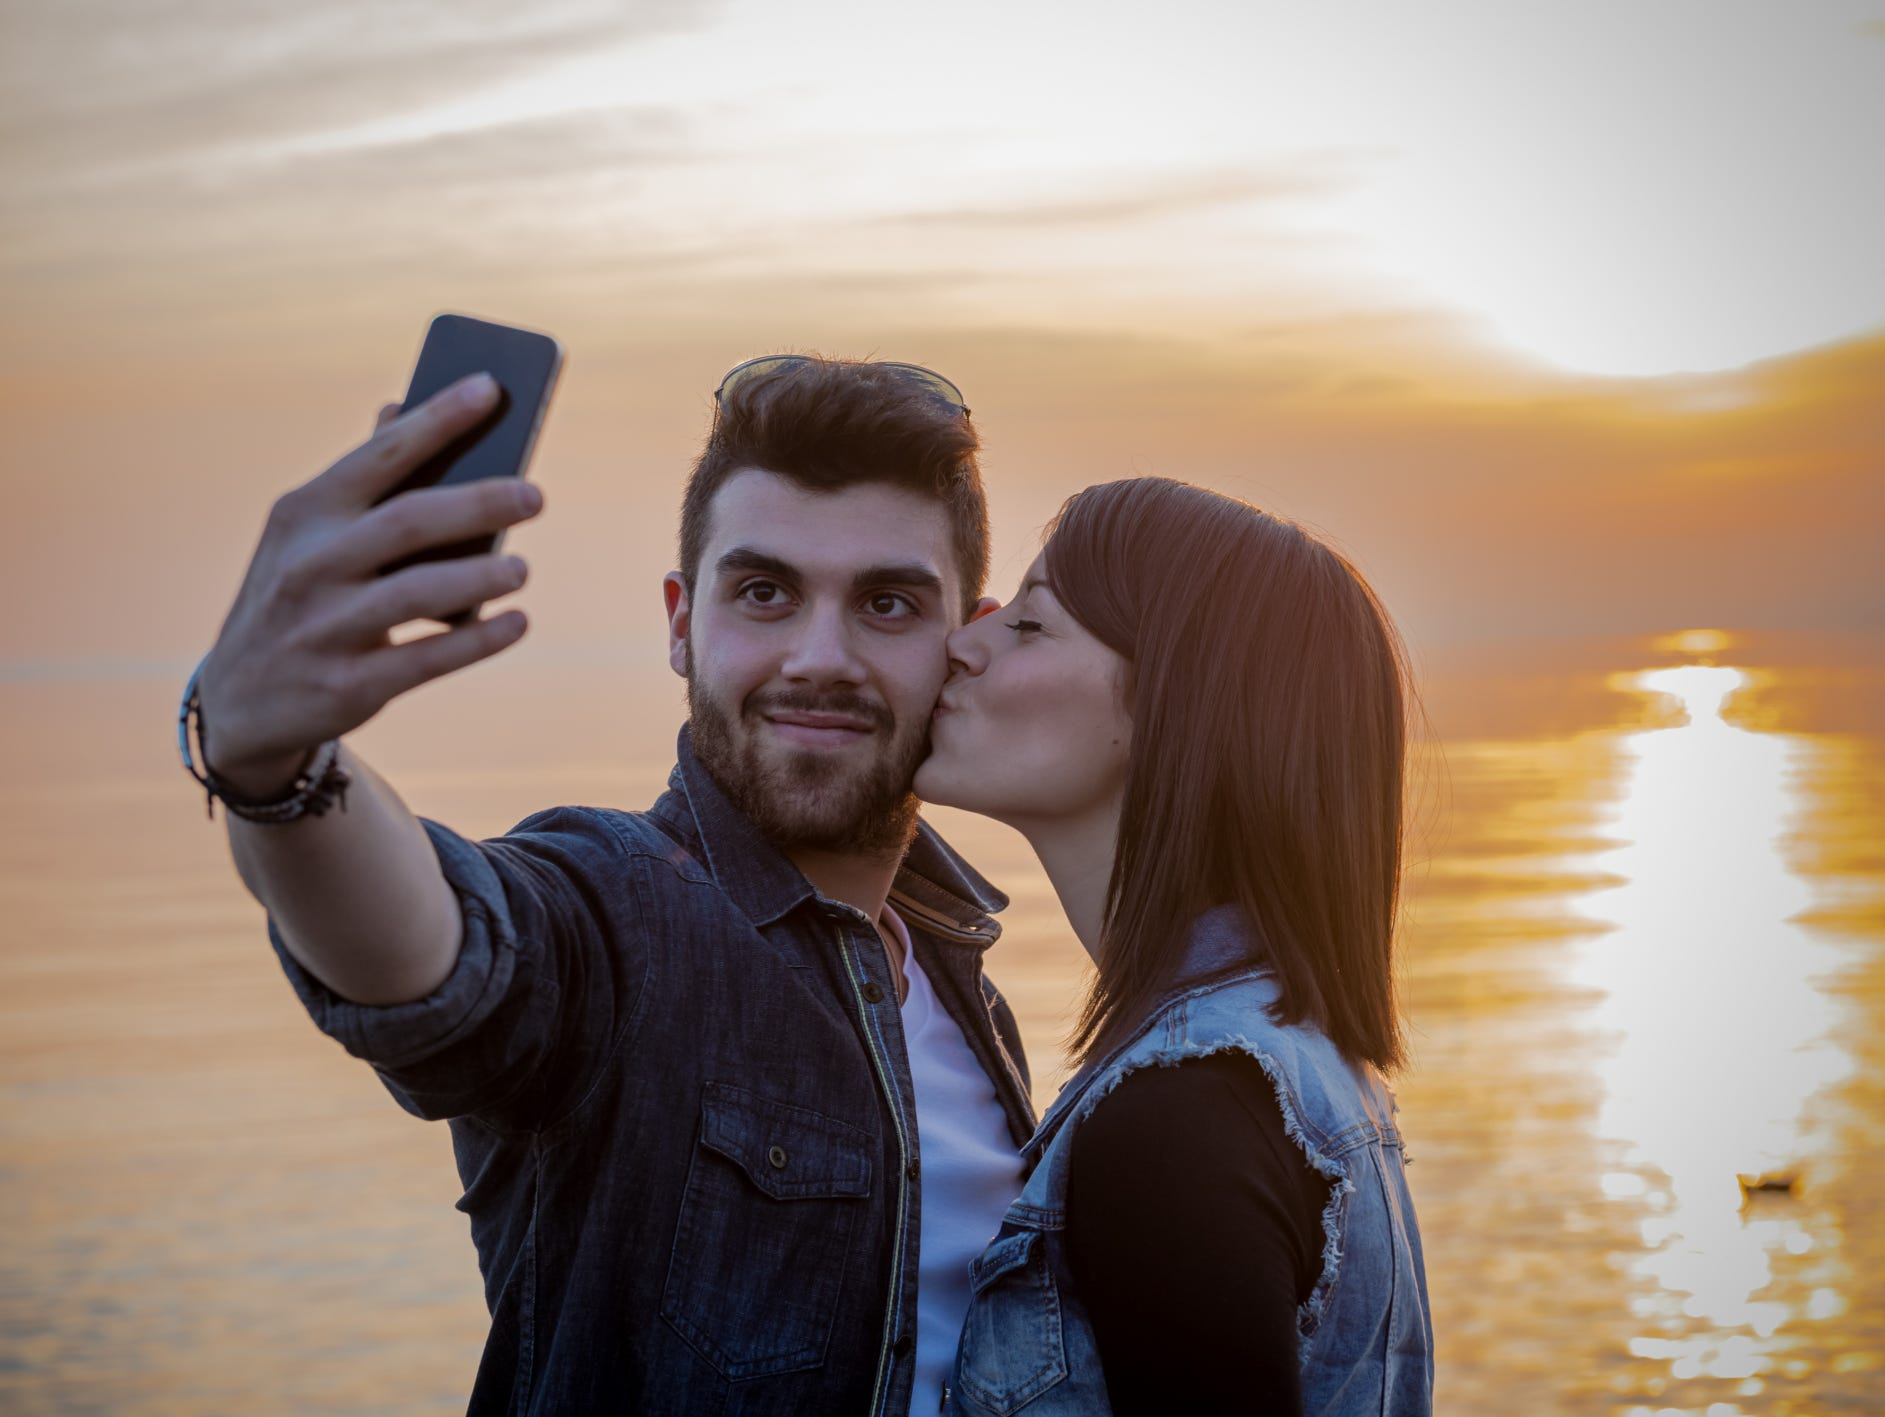 Taking selfies is all fun and games until your phone falls into the lake. Repair shops offer varying advice on putting wet phones in rice, though all sternly warn against powering on or charging a damp device.